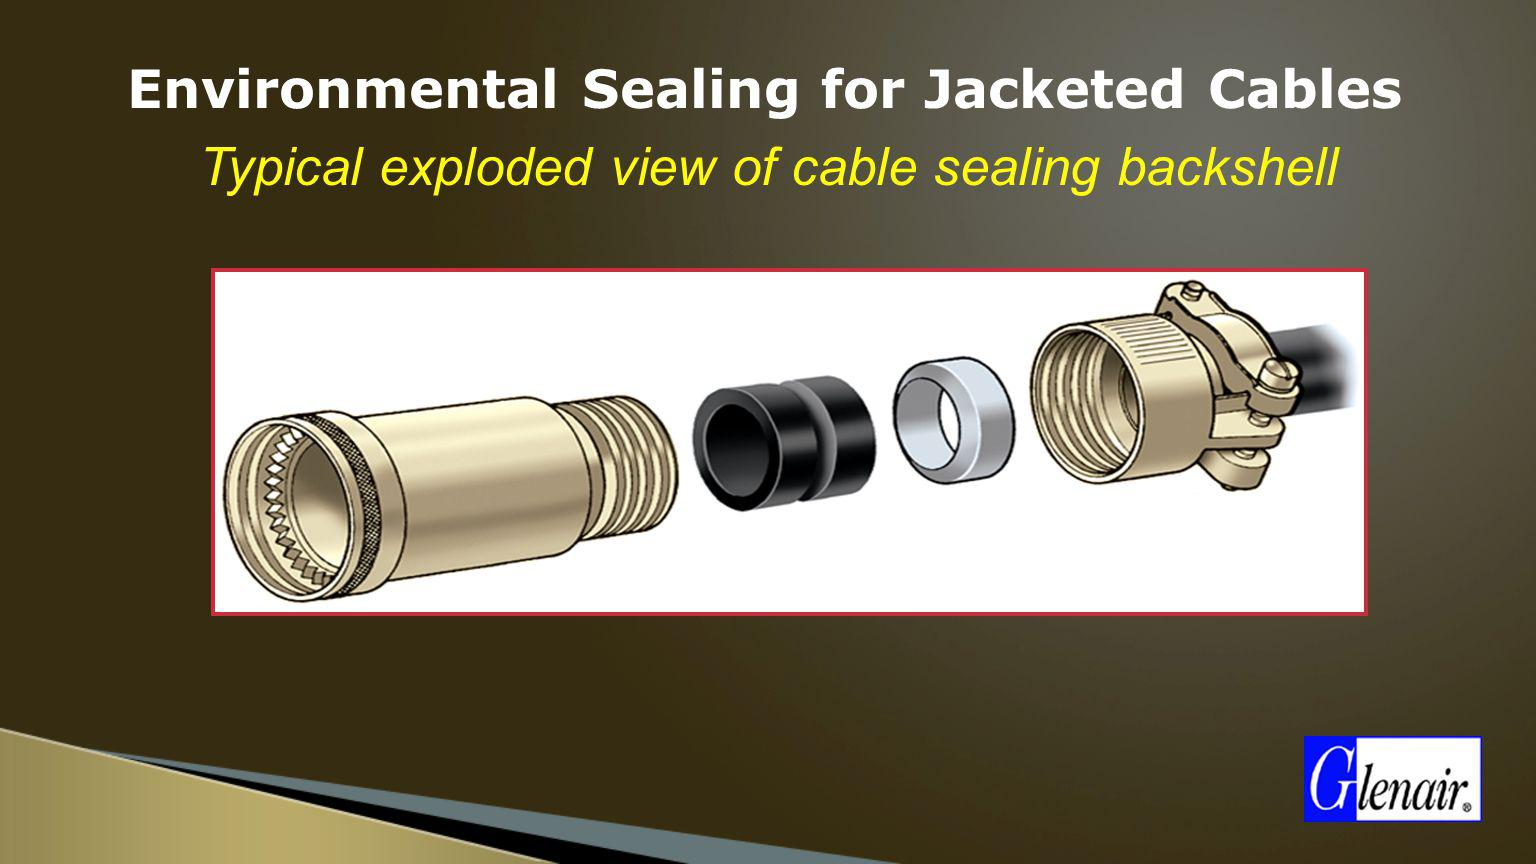 Environmental Sealing for Jacketed Cables